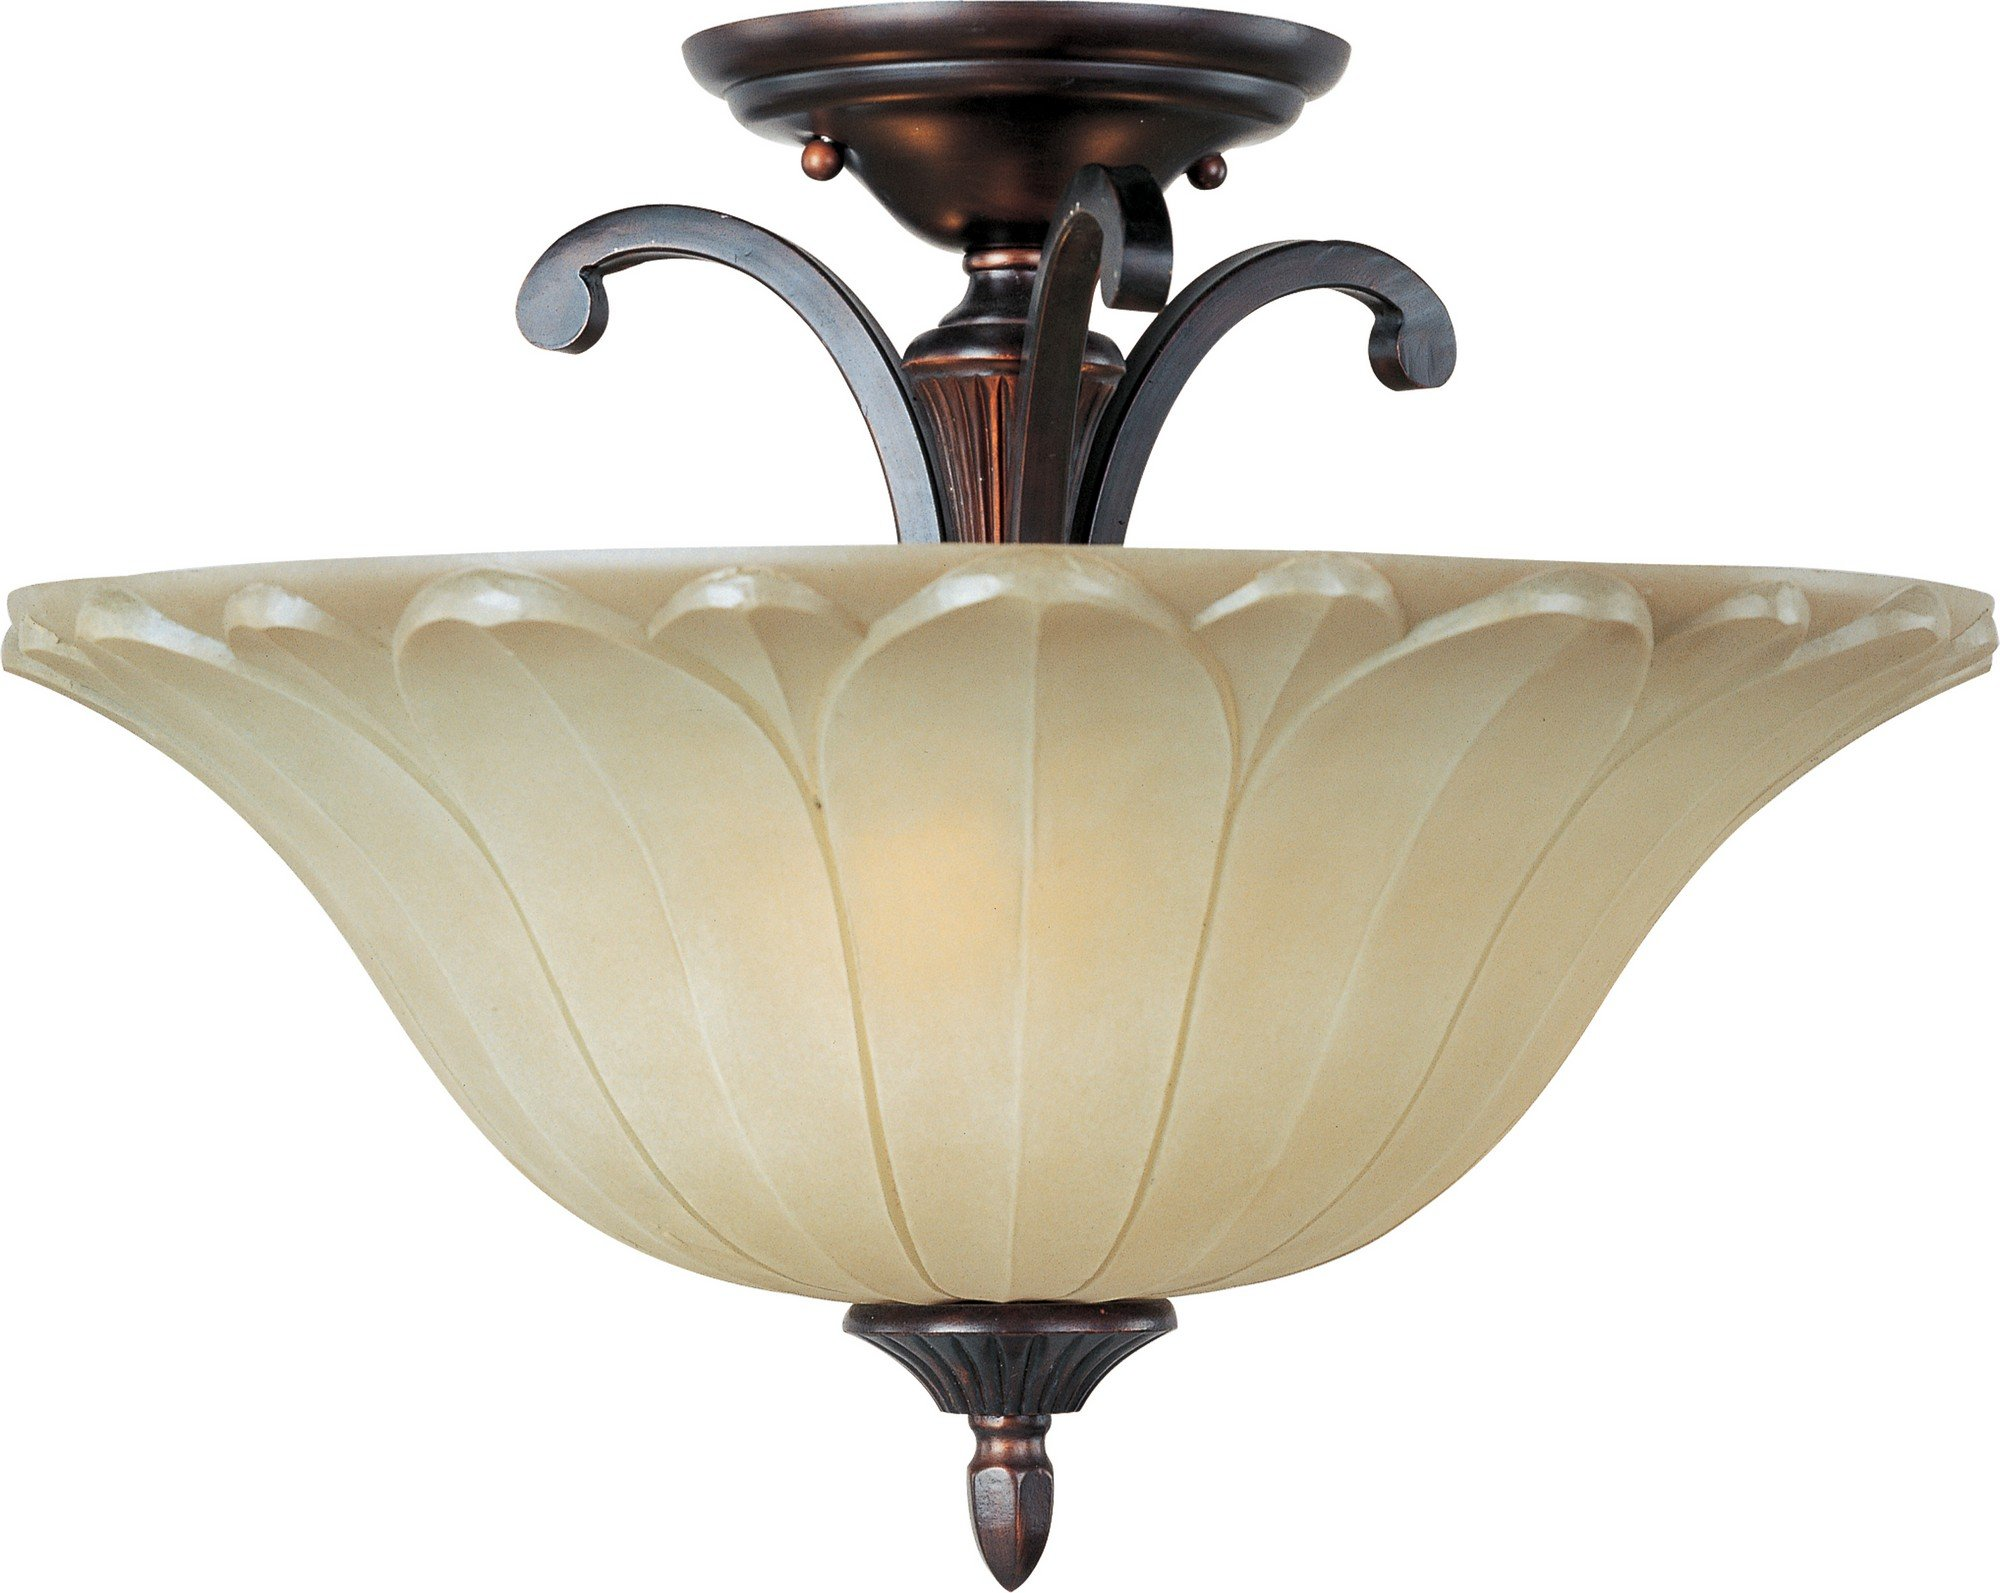 Maxim 13501WSOI Allentown 3-Light Semi-Flush Mount, Oil Rubbed Bronze Finish, Wilshire Glass, MB Incandescent Incandescent Bulb , 60W Max., Dry Safety Rating, Metal Shade Material, Rated Lumens